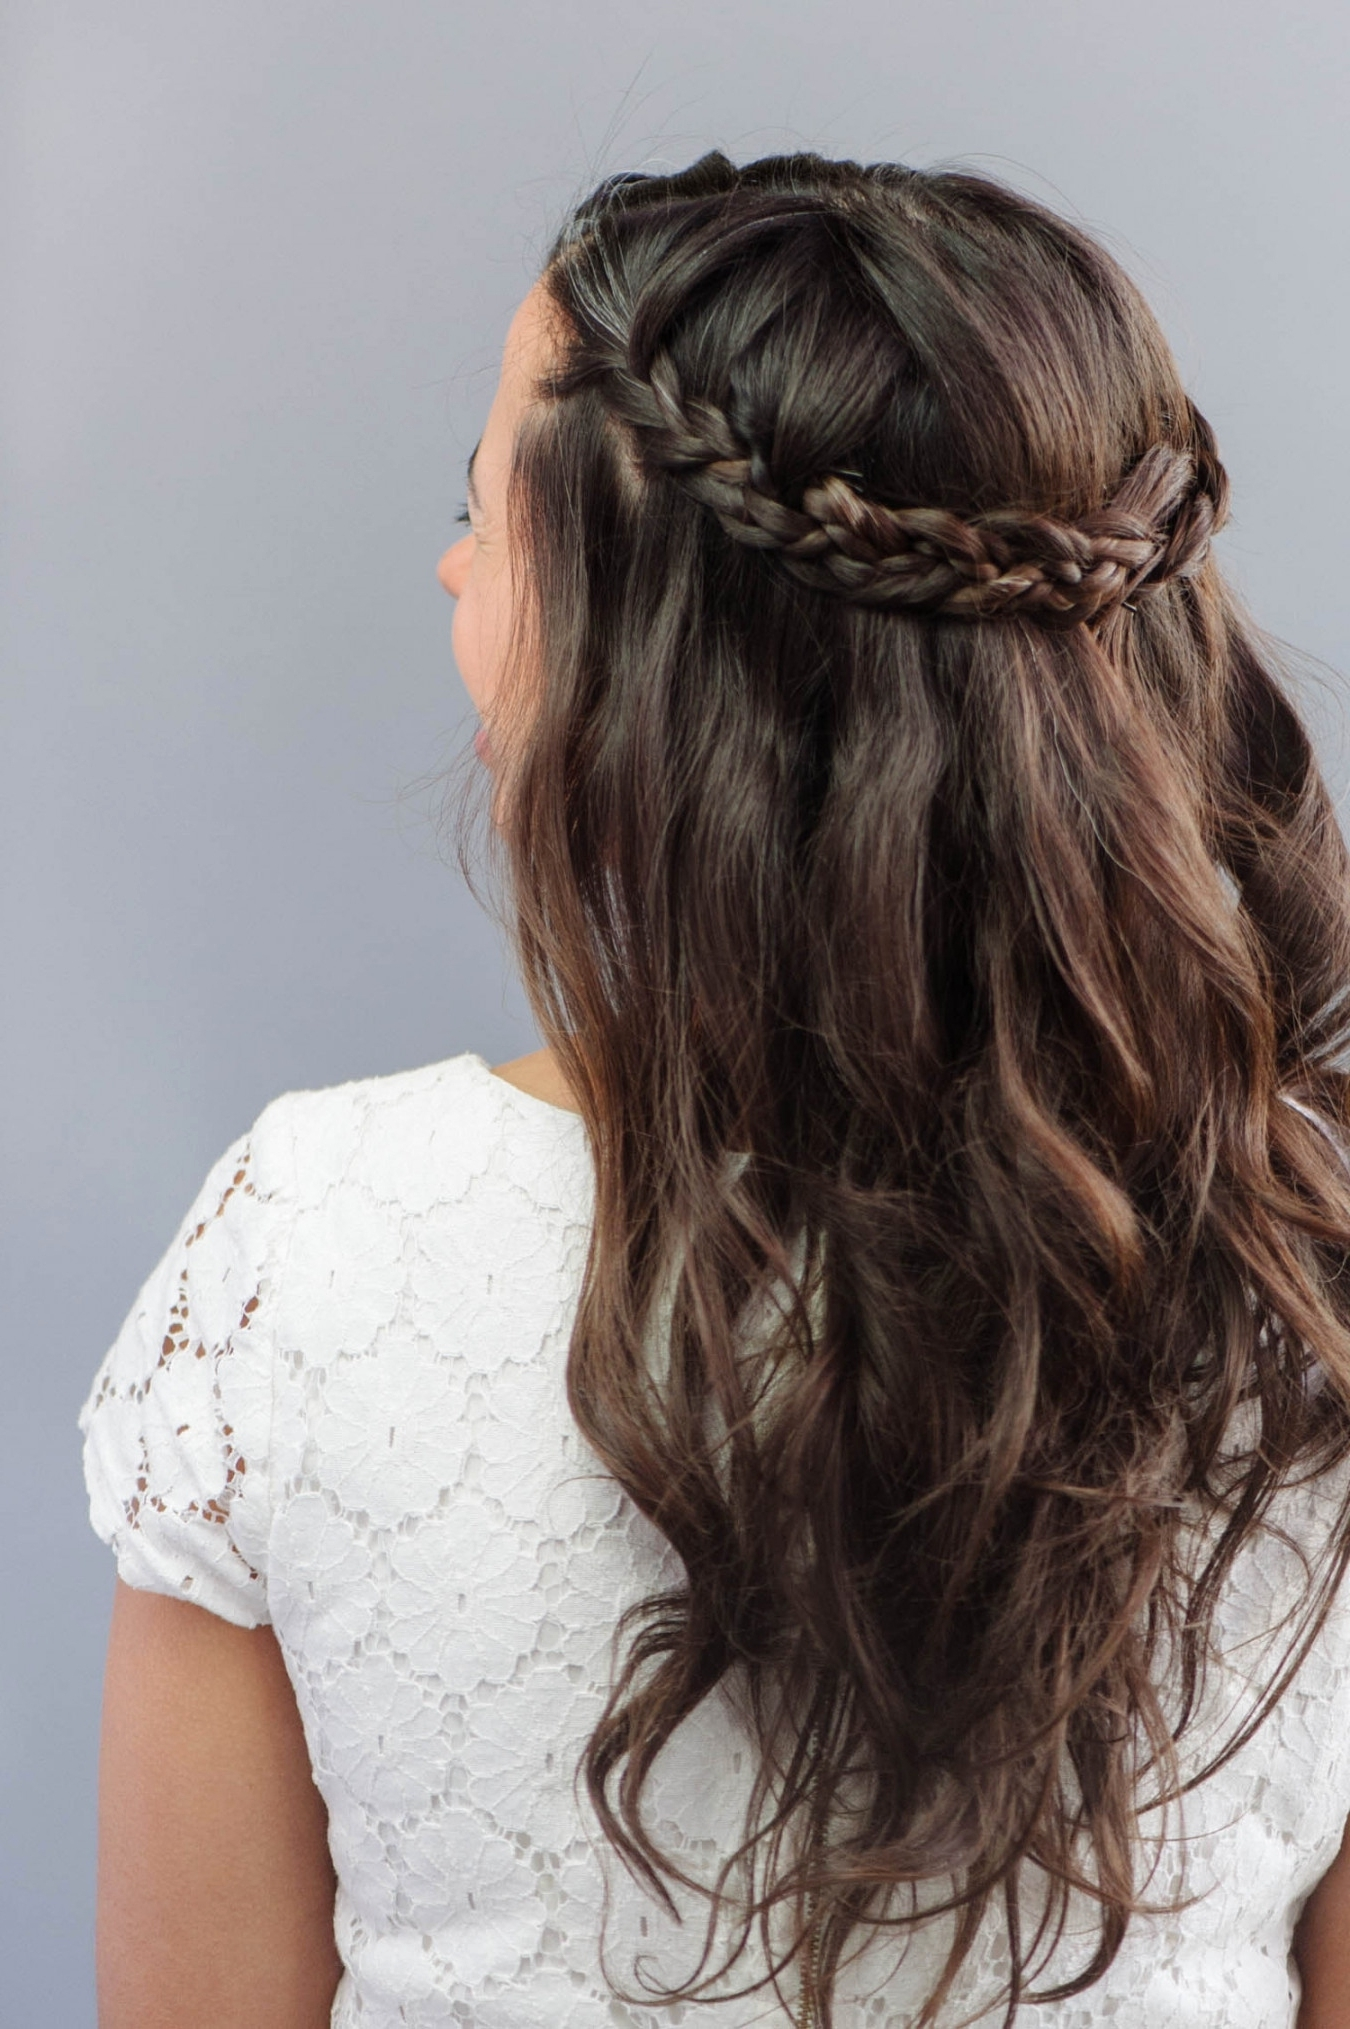 2017 Braided Wedding Hairstyles Intended For African Wedding Hairstyles Braids New How To Braided Wedding Hair (View 12 of 15)